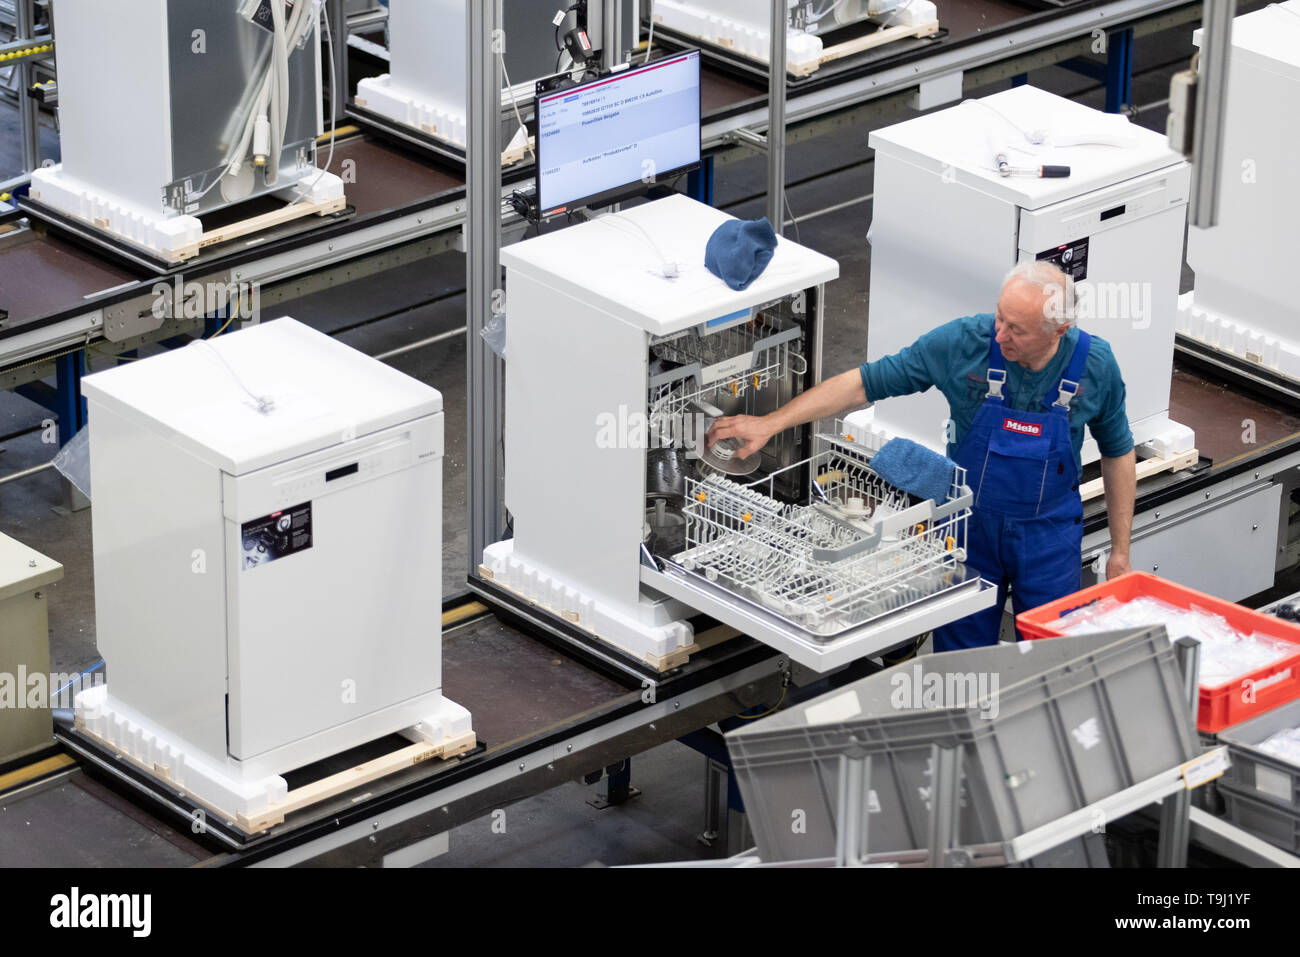 Bielefeld, Germany. 17th May, 2019. Employee Albert Kugel carries out the final inspection of a dishwasher on a production line at Miele & Cie. KG. Miele is a German manufacturer of household and commercial appliances based in Gütersloh. Credit: Friso Gentsch/dpa/Alamy Live News - Stock Image